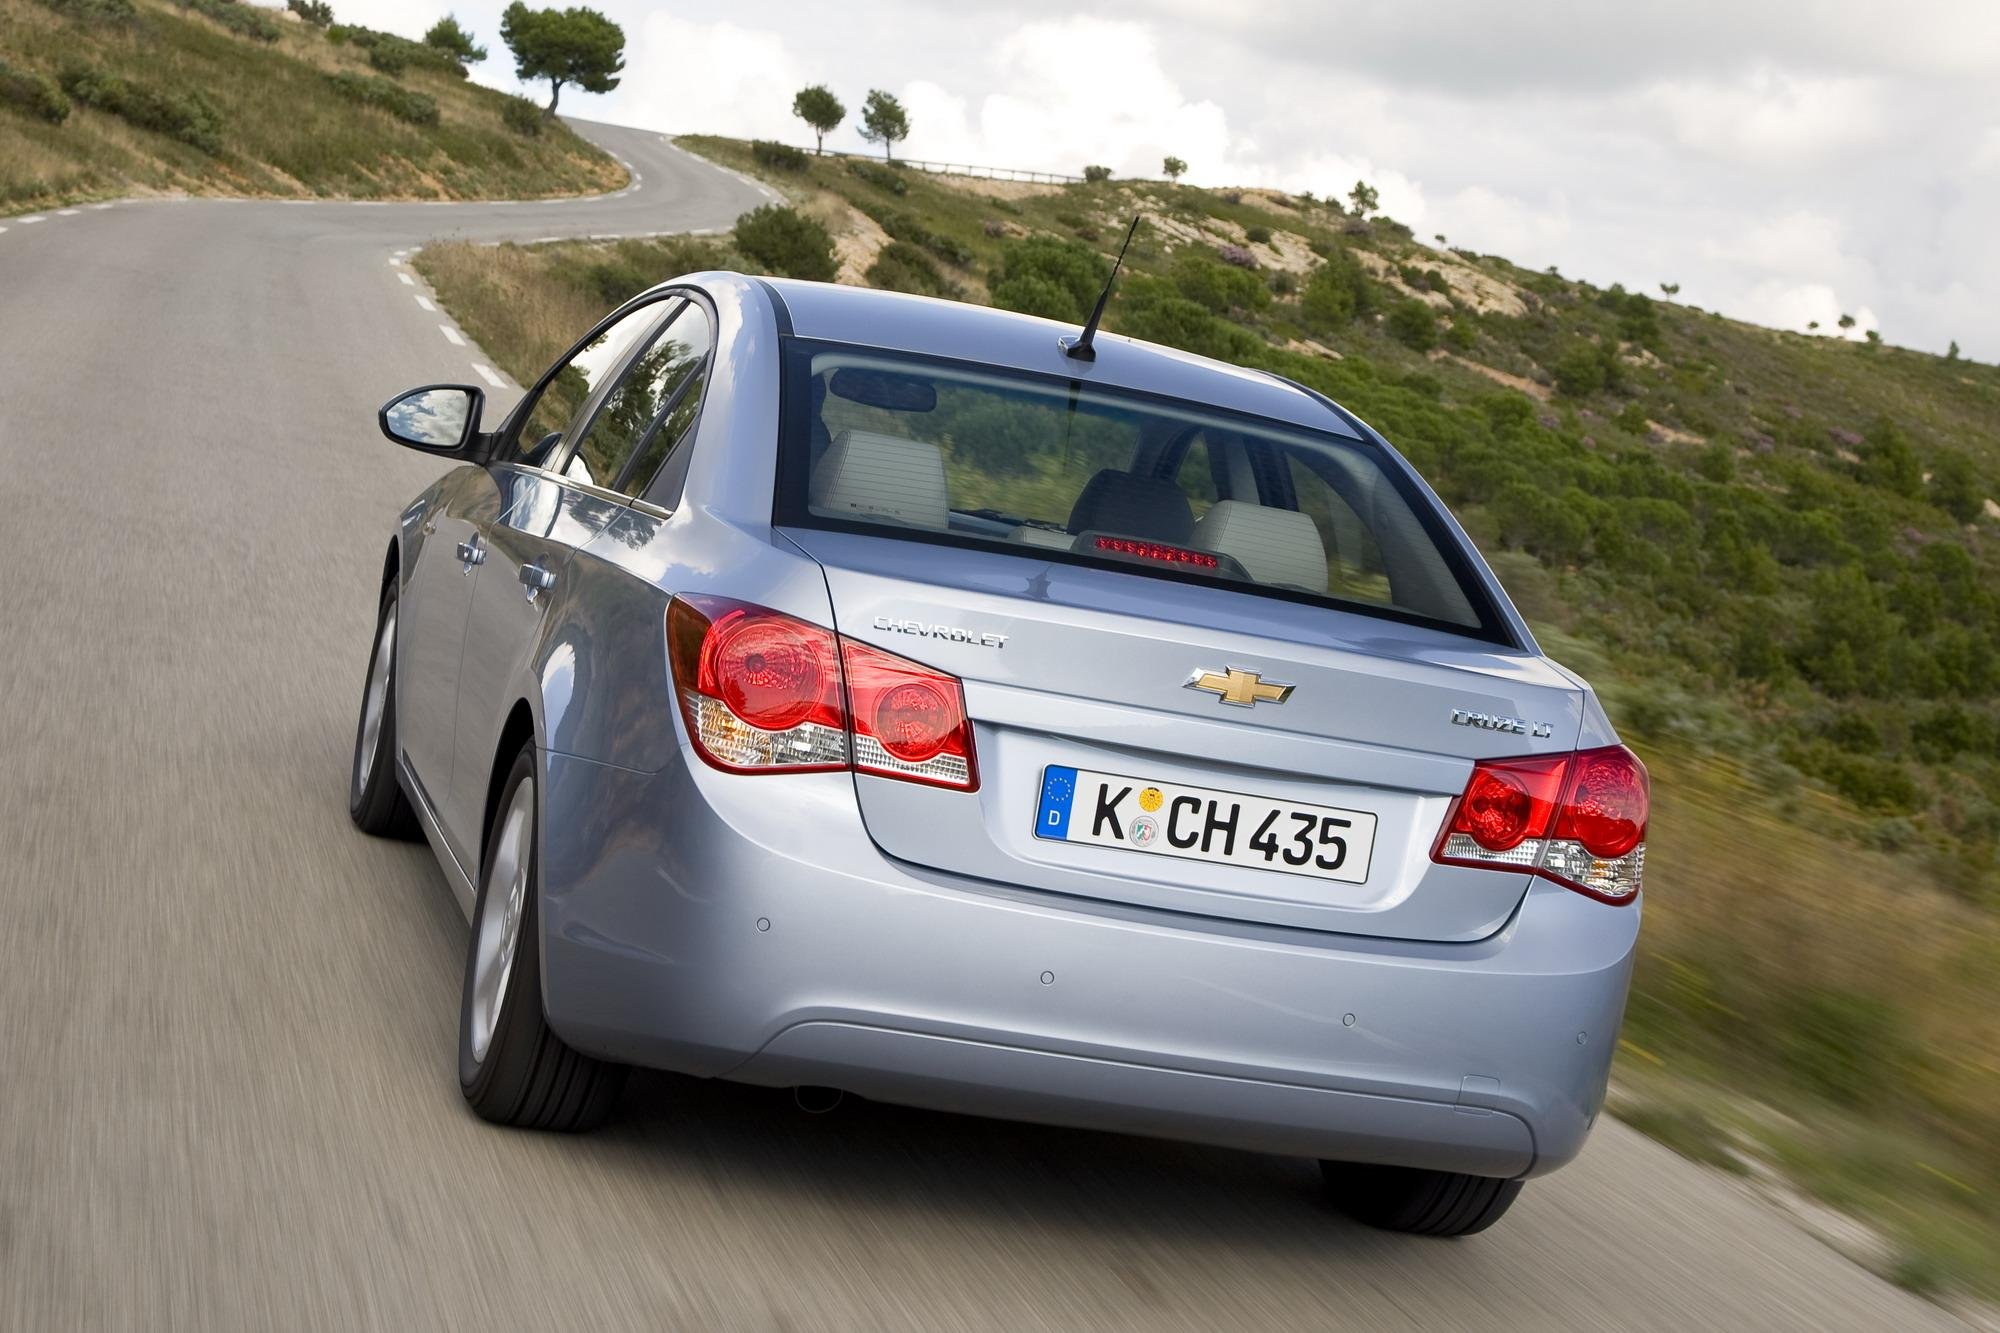 Chevrolet Cruze Repair Manual: Rear Seat Back Cushion Cover and Pad Replacement - Left Side